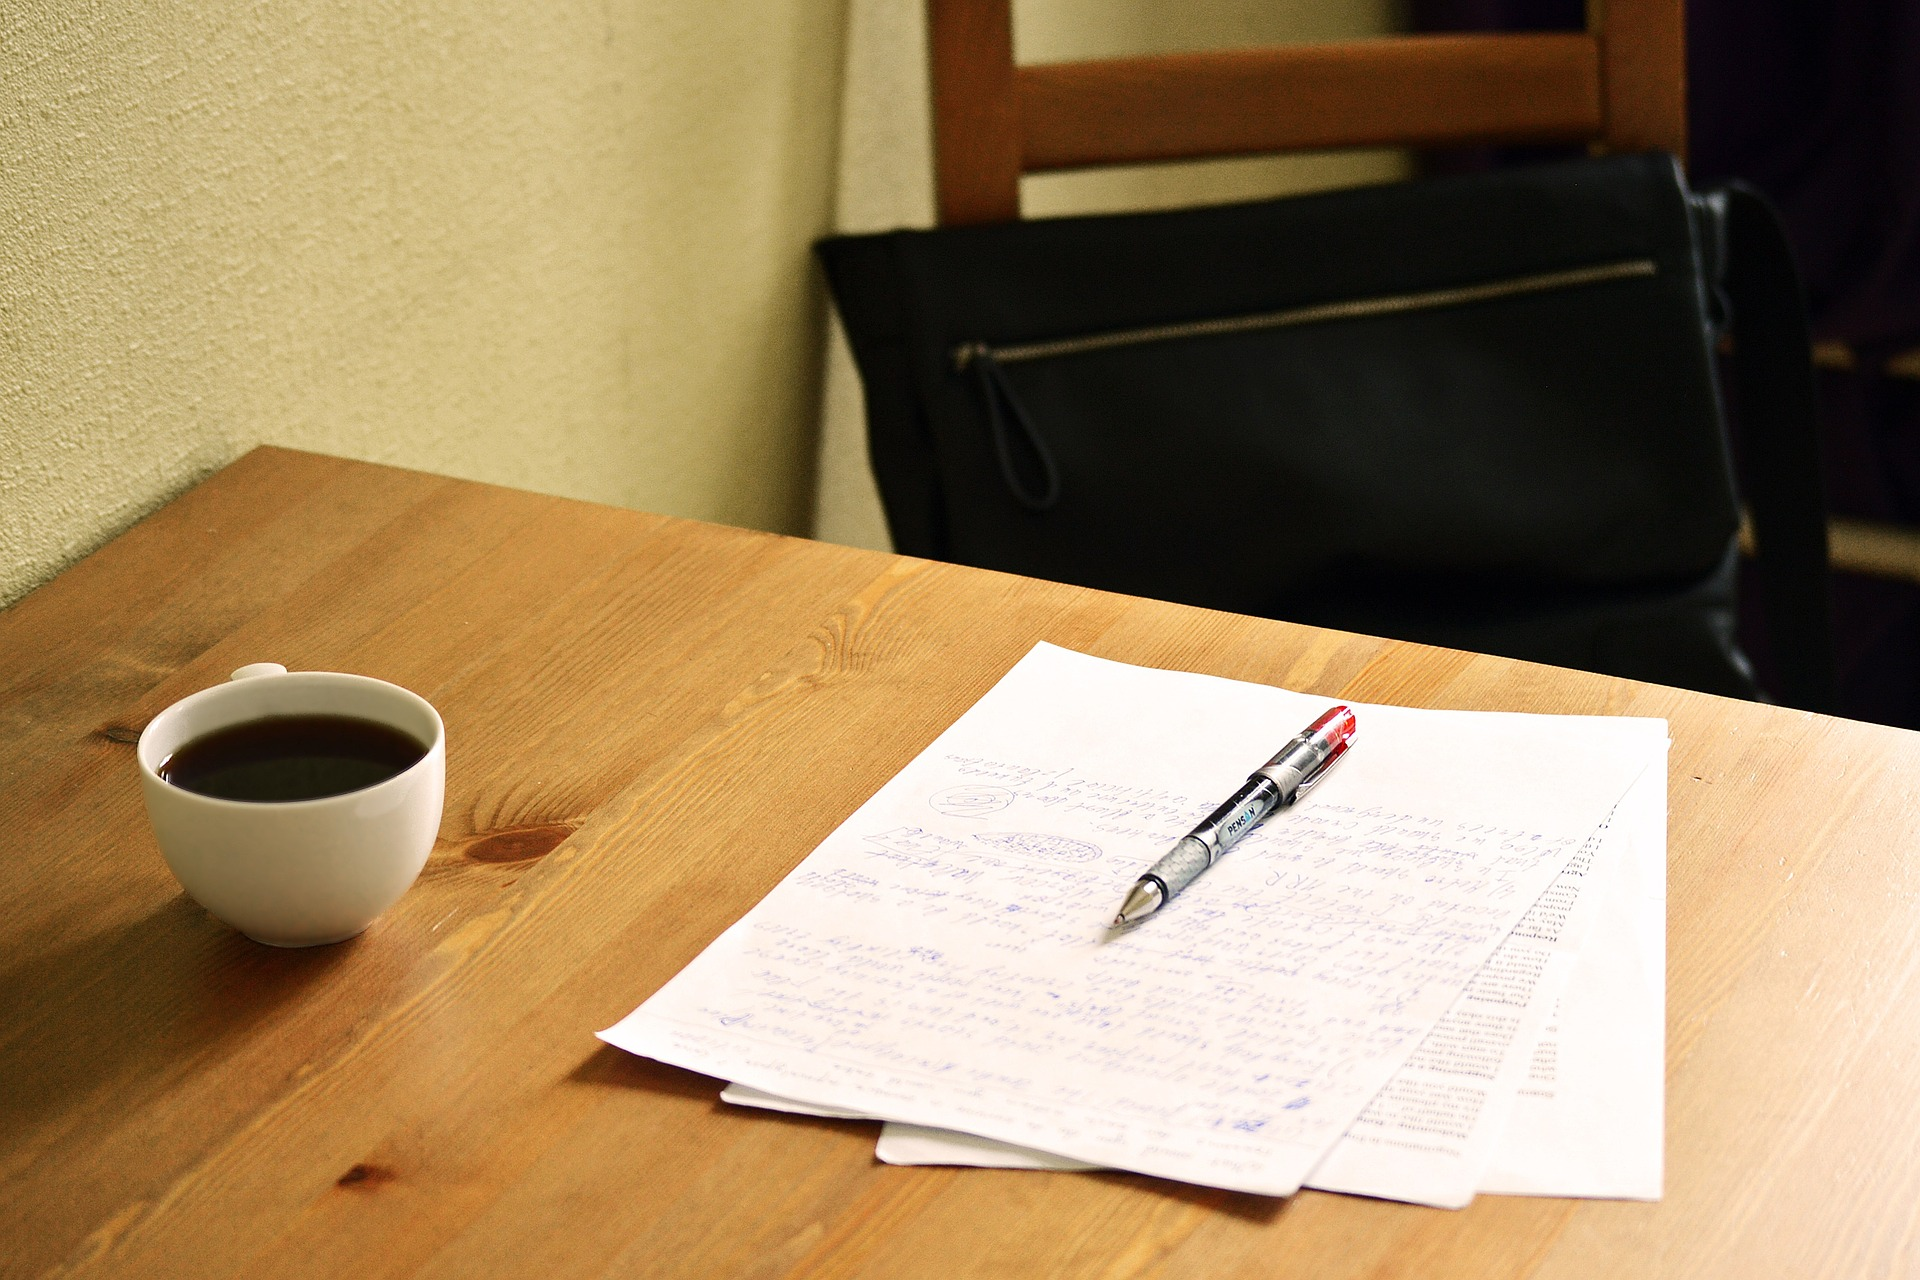 Paper on a desk with a pen on top